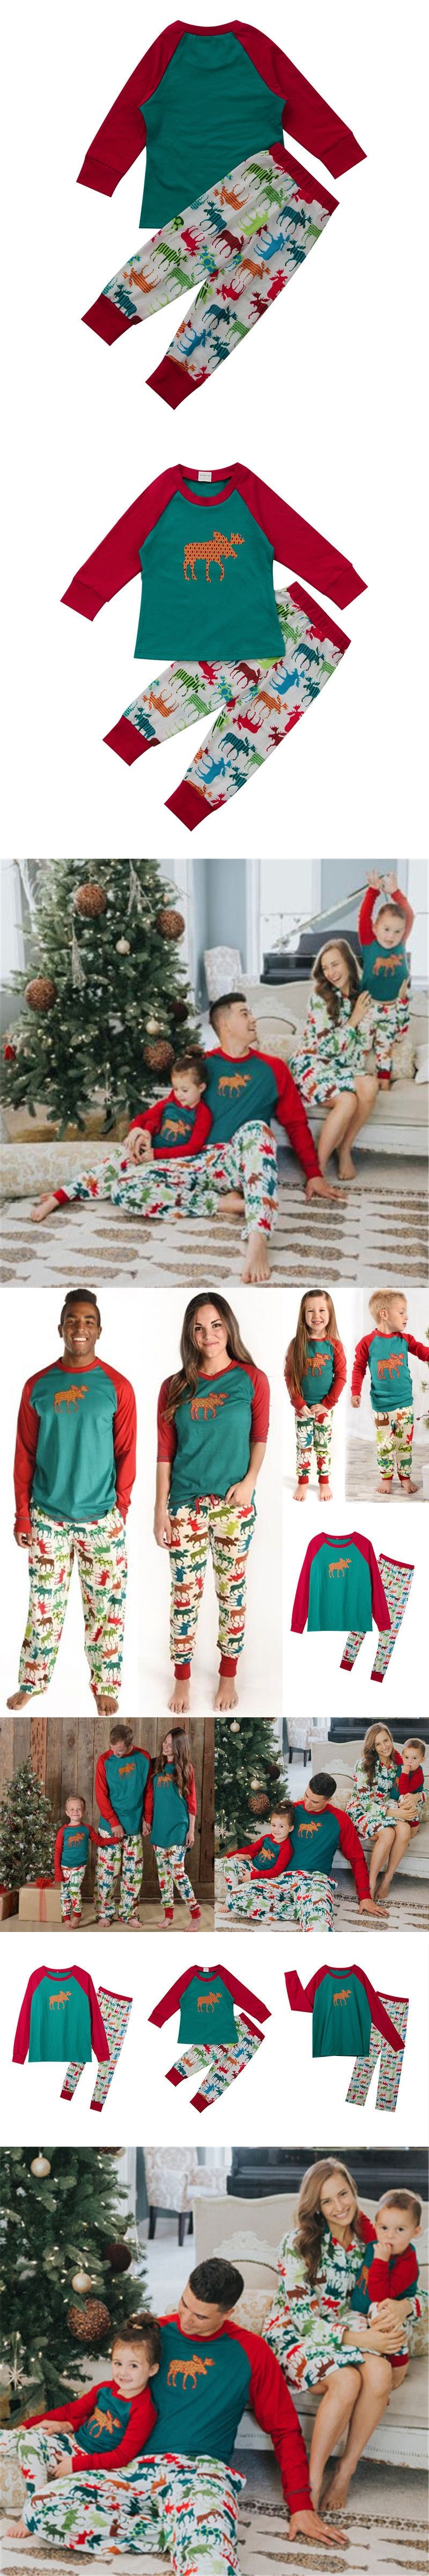 Christmas Family Match Pajamas Set Xmas Pjs Father Mother Kids Sleepwear  Nightwear 2017 New Arrival Family 41427e978